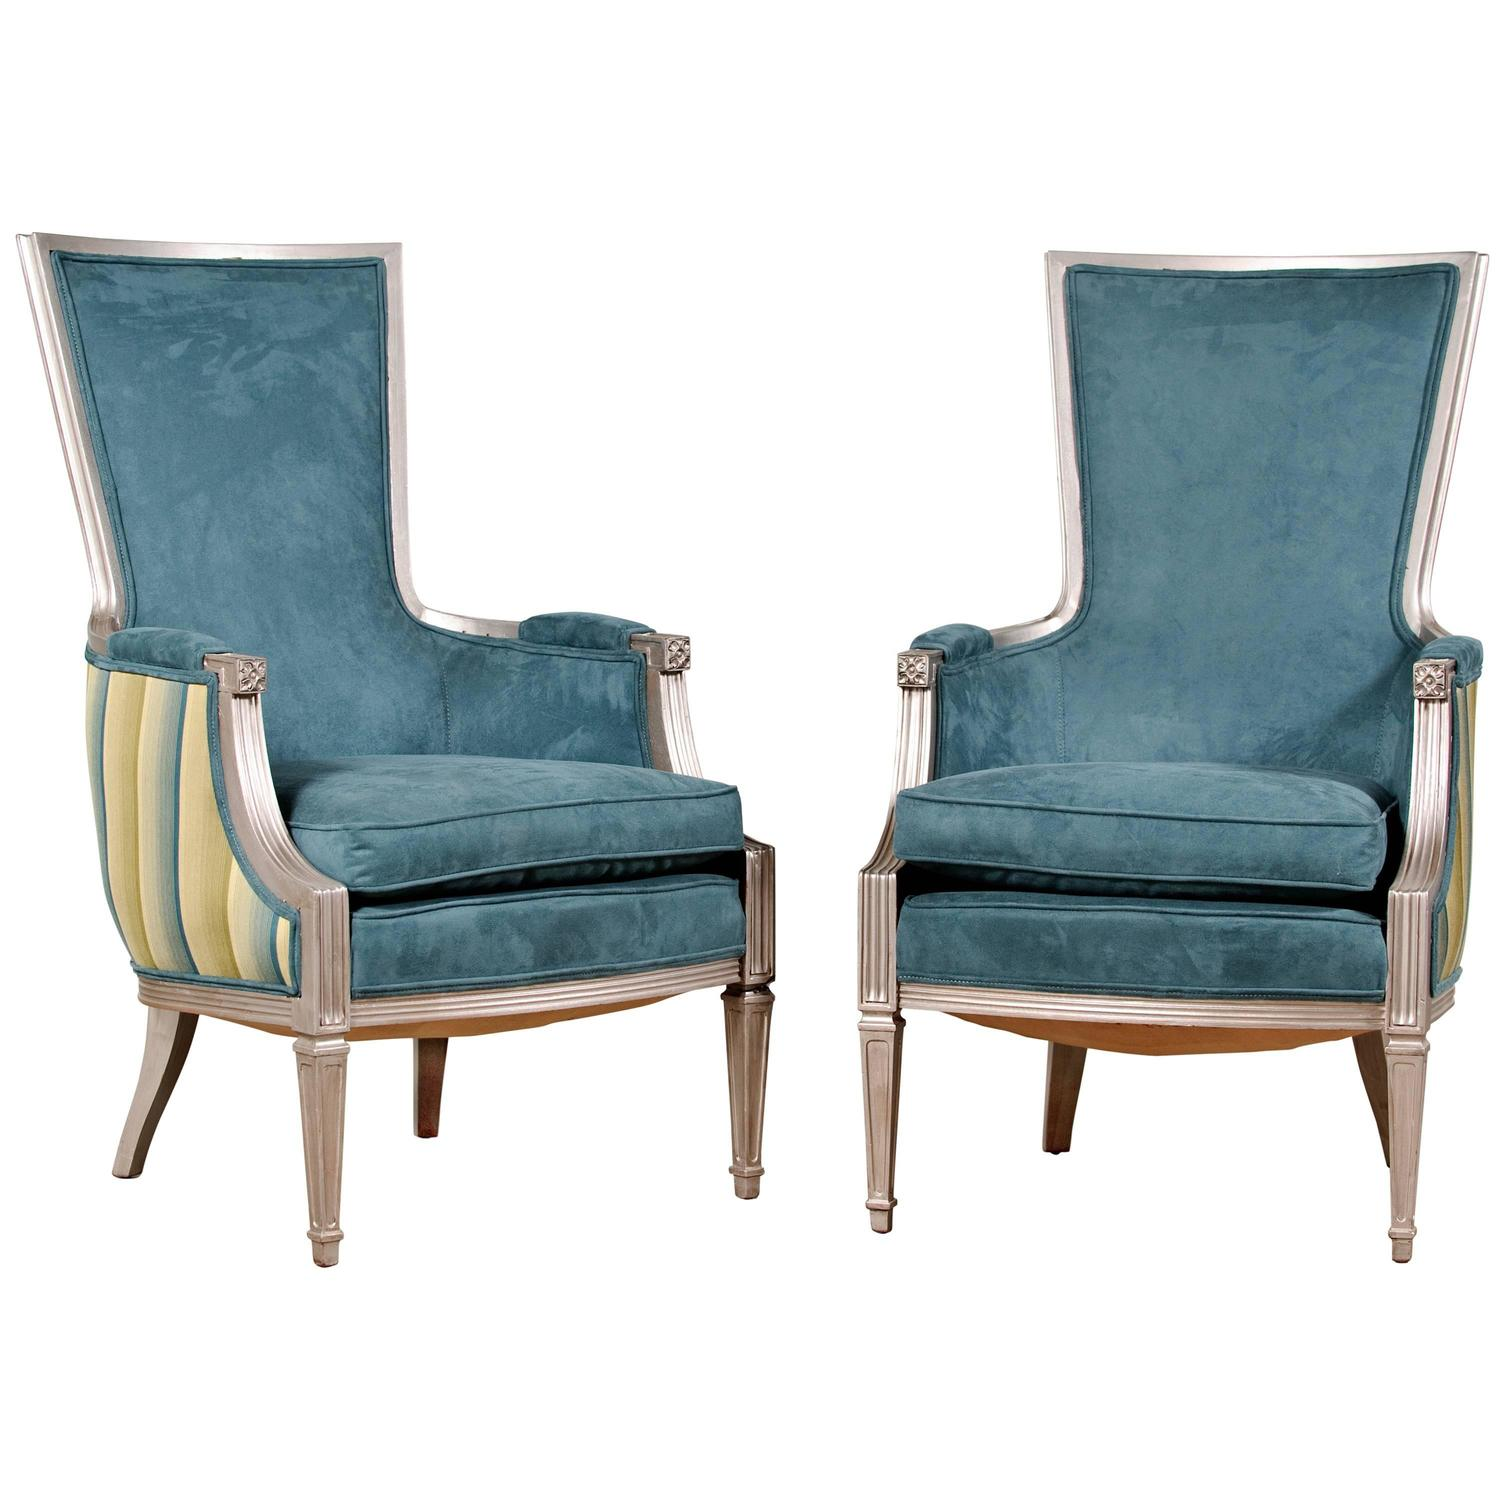 Vintage Neoclassic Chairs in Aqua and Faux Silverleaf For Sale at